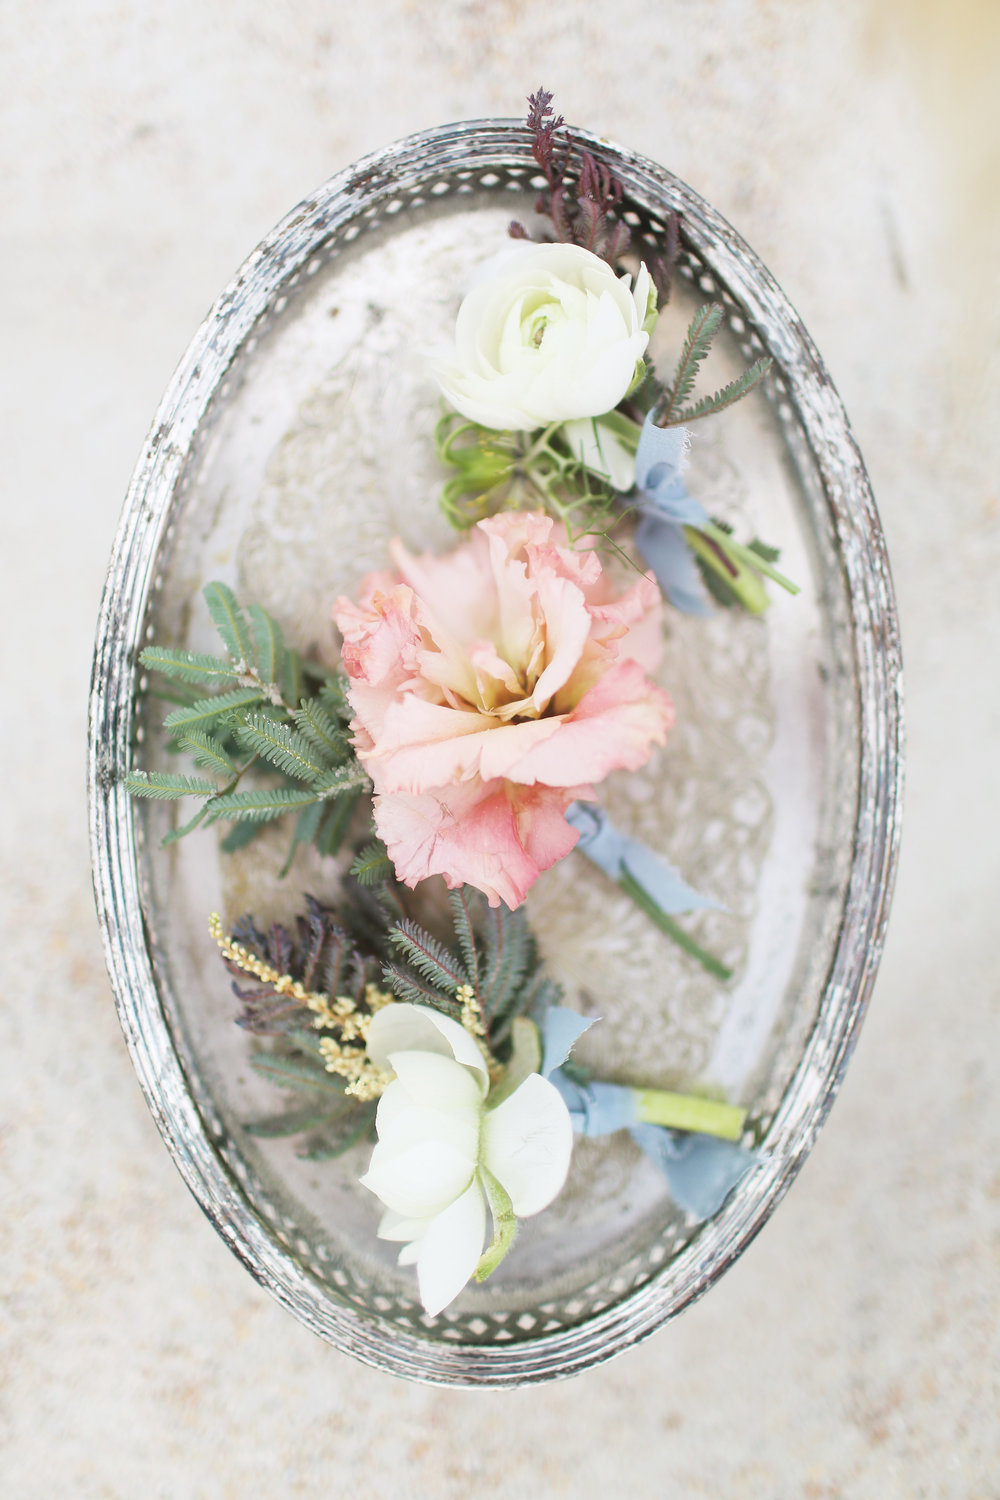 We would love to hear from you! Please drop us a line at hello@featherandbloomflorals.com and tell us all about your event! -